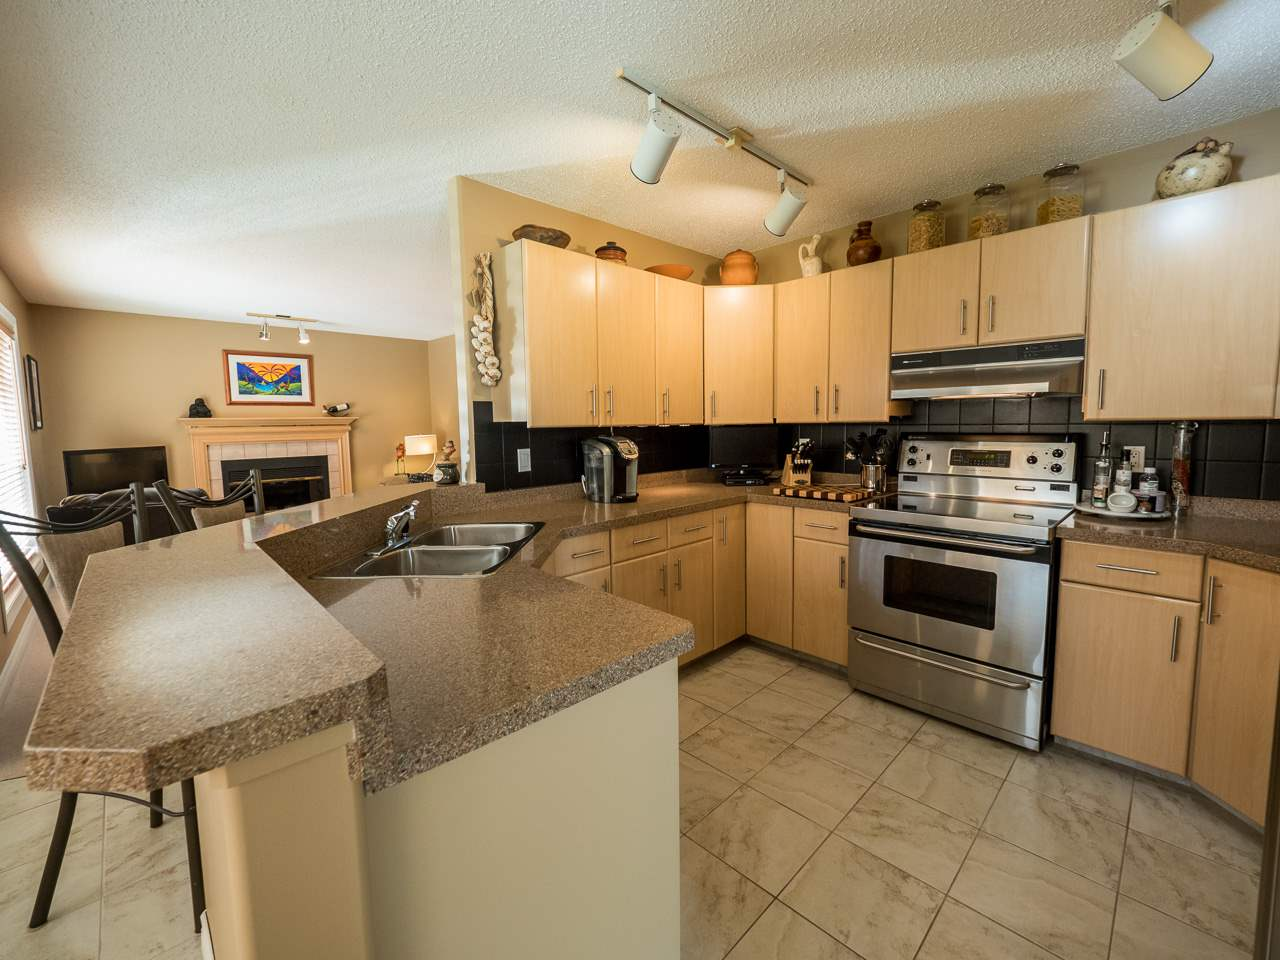 Photo 8: 205 WEBER Place in Edmonton: Zone 20 House for sale : MLS® # E4077601